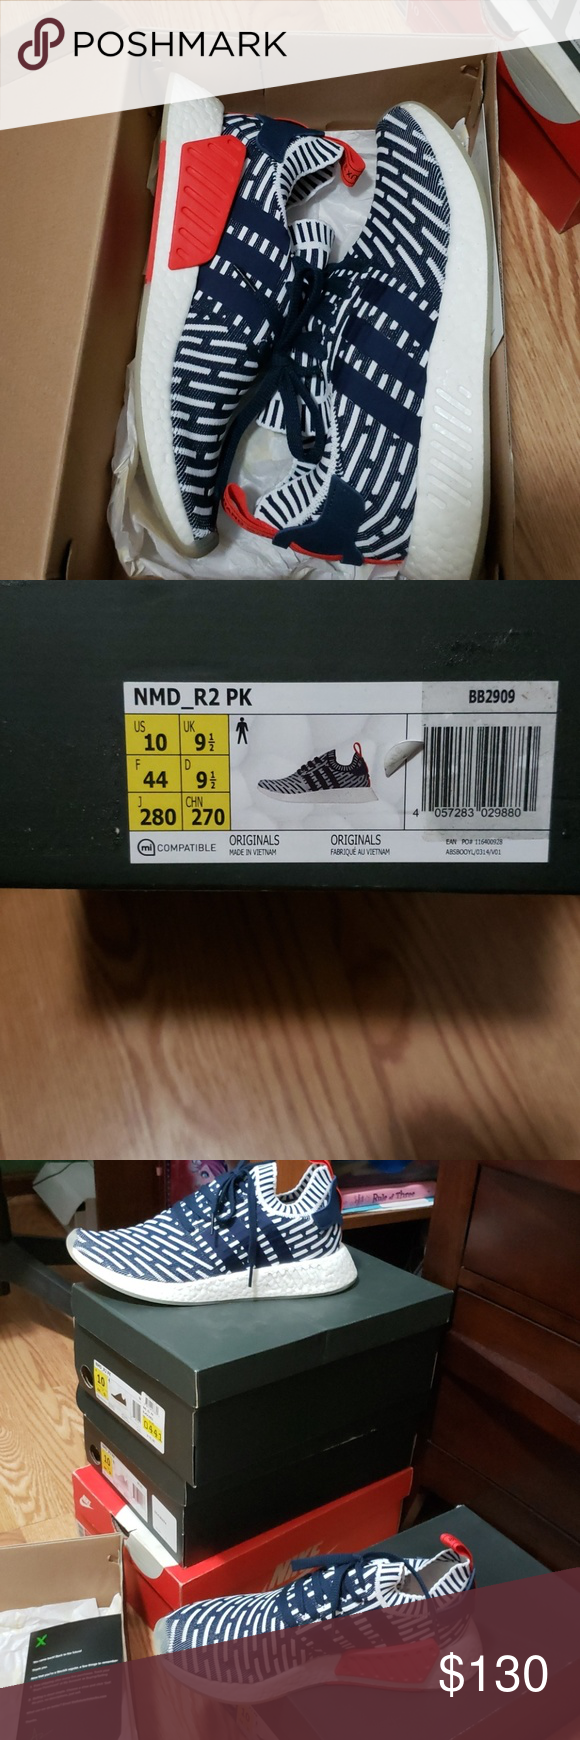 the latest 2f6c9 5cffe Adidas NMD R2 Mint Condition: Worn once 100% Authentic Price ...